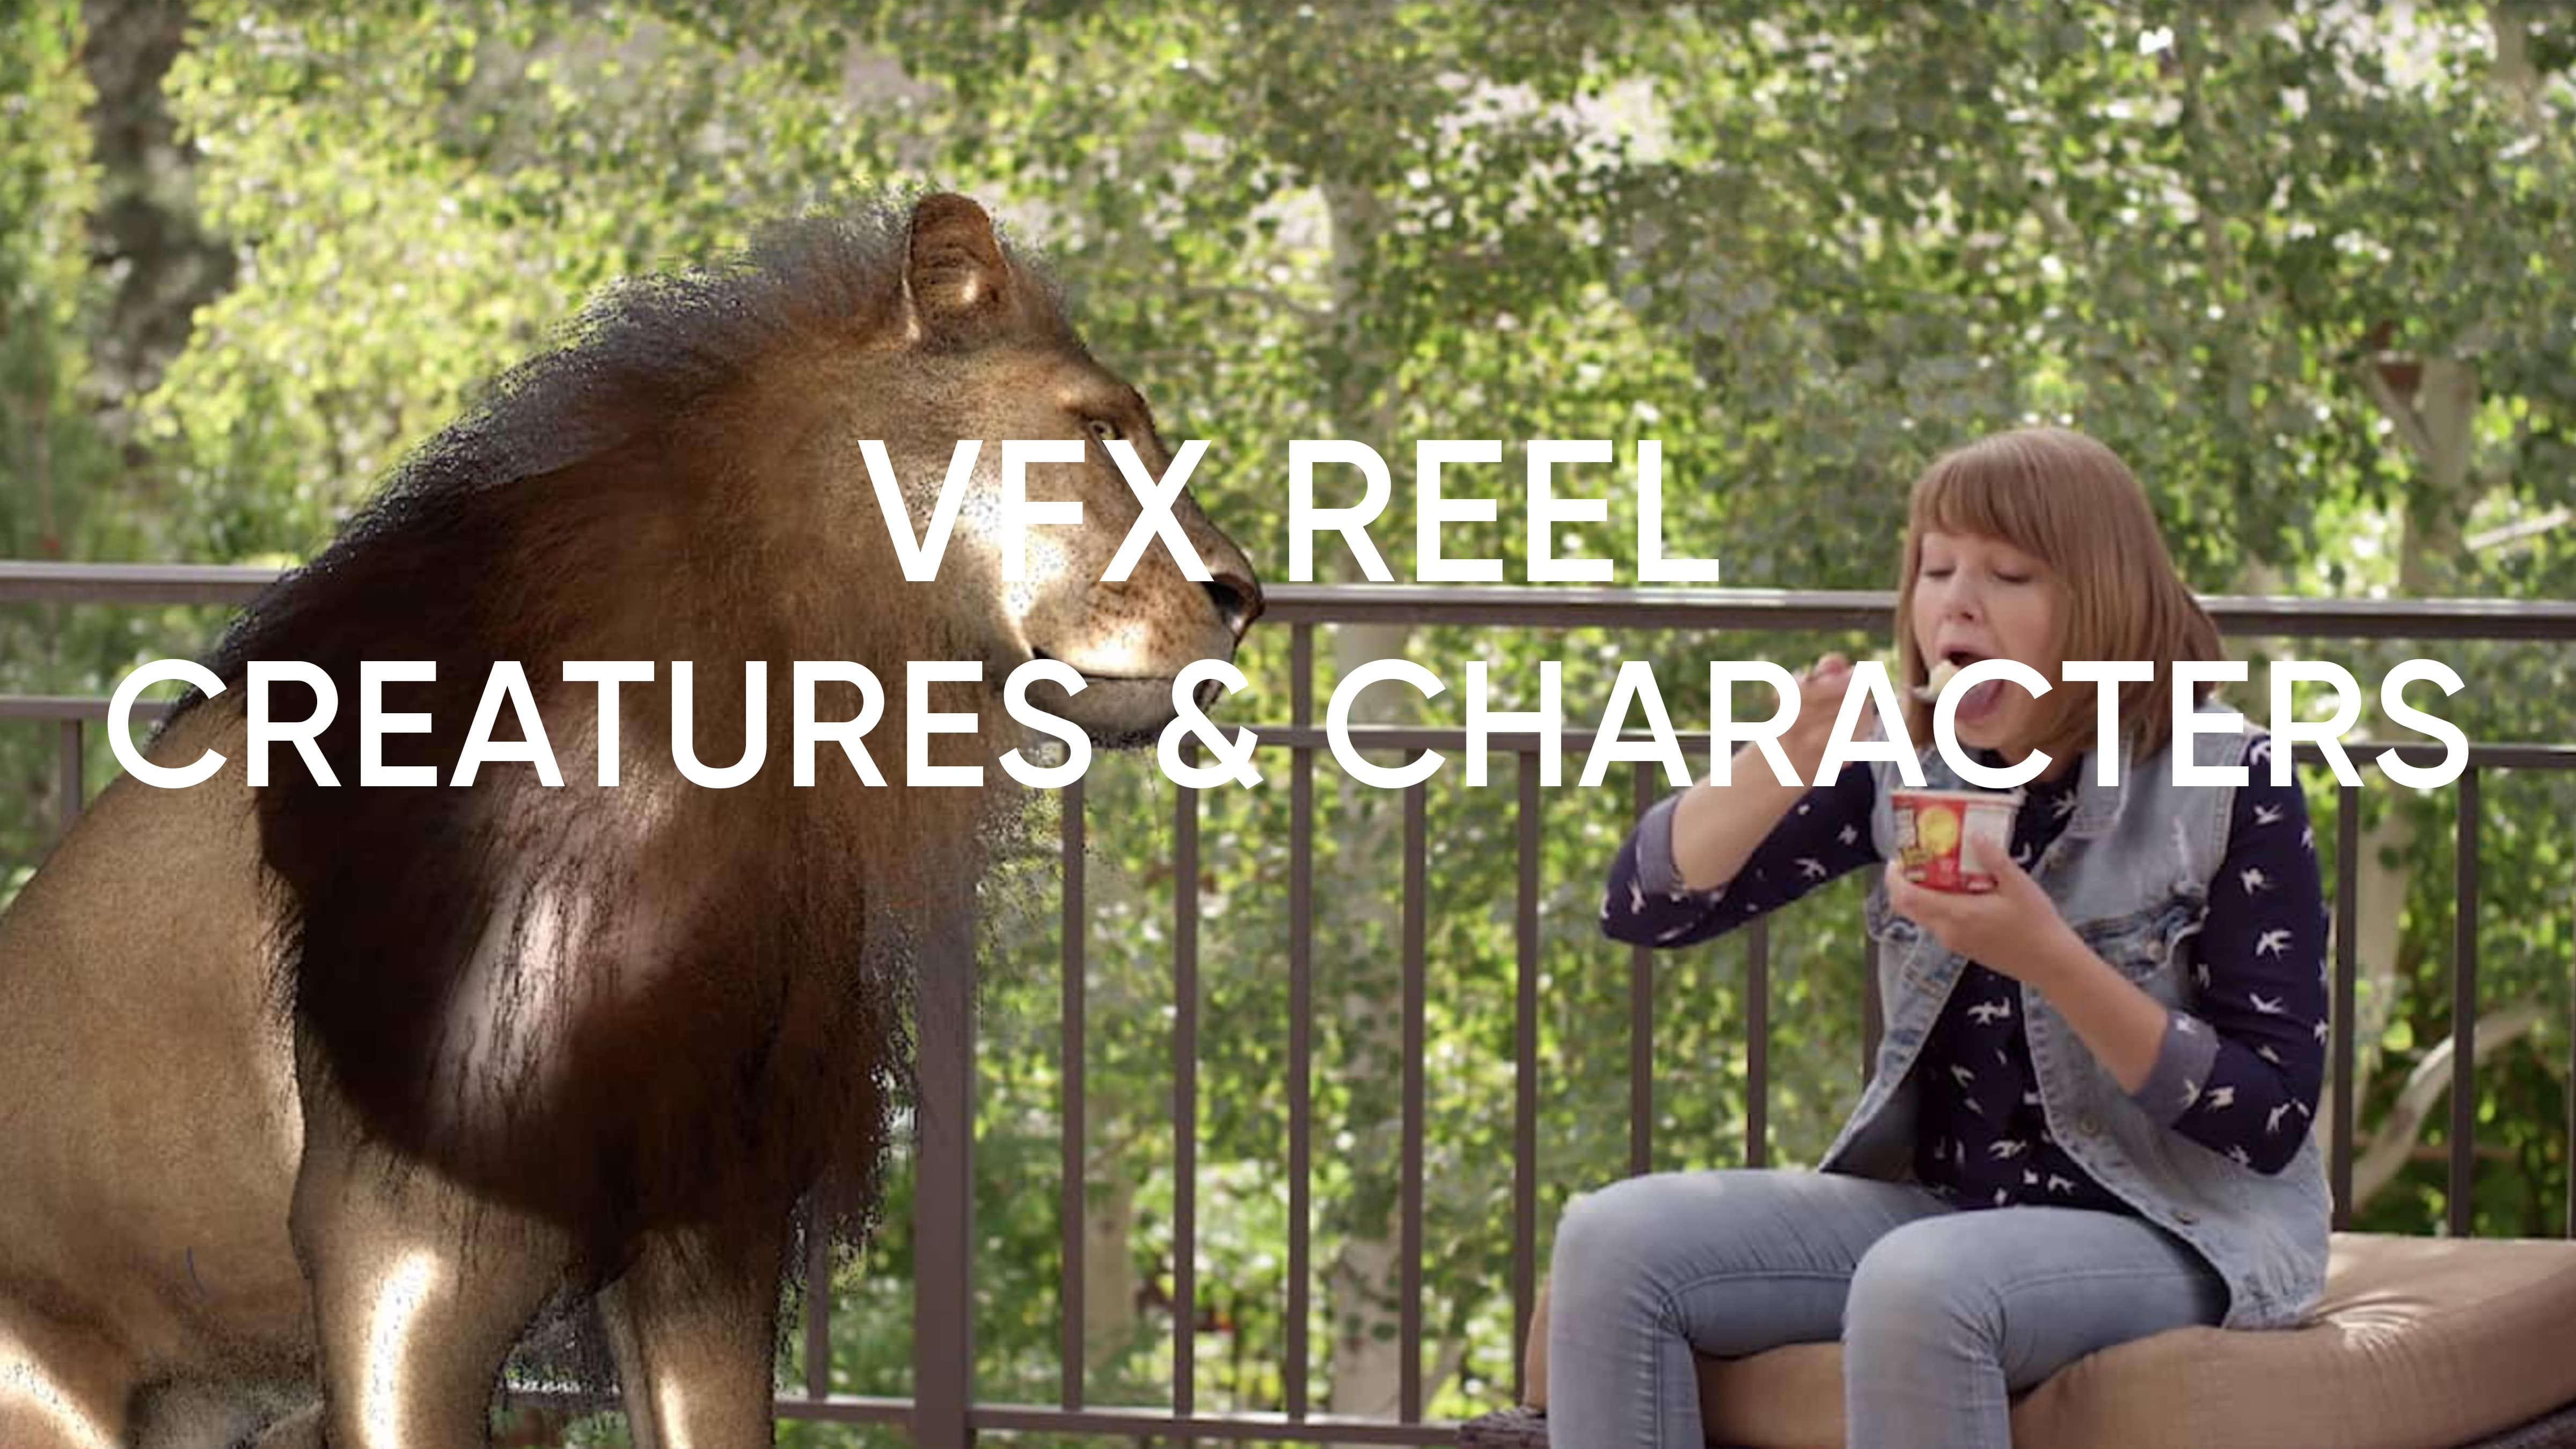 This reel displays the different creatures and characters CosmicVFX is able to complete, including a lion and alien.